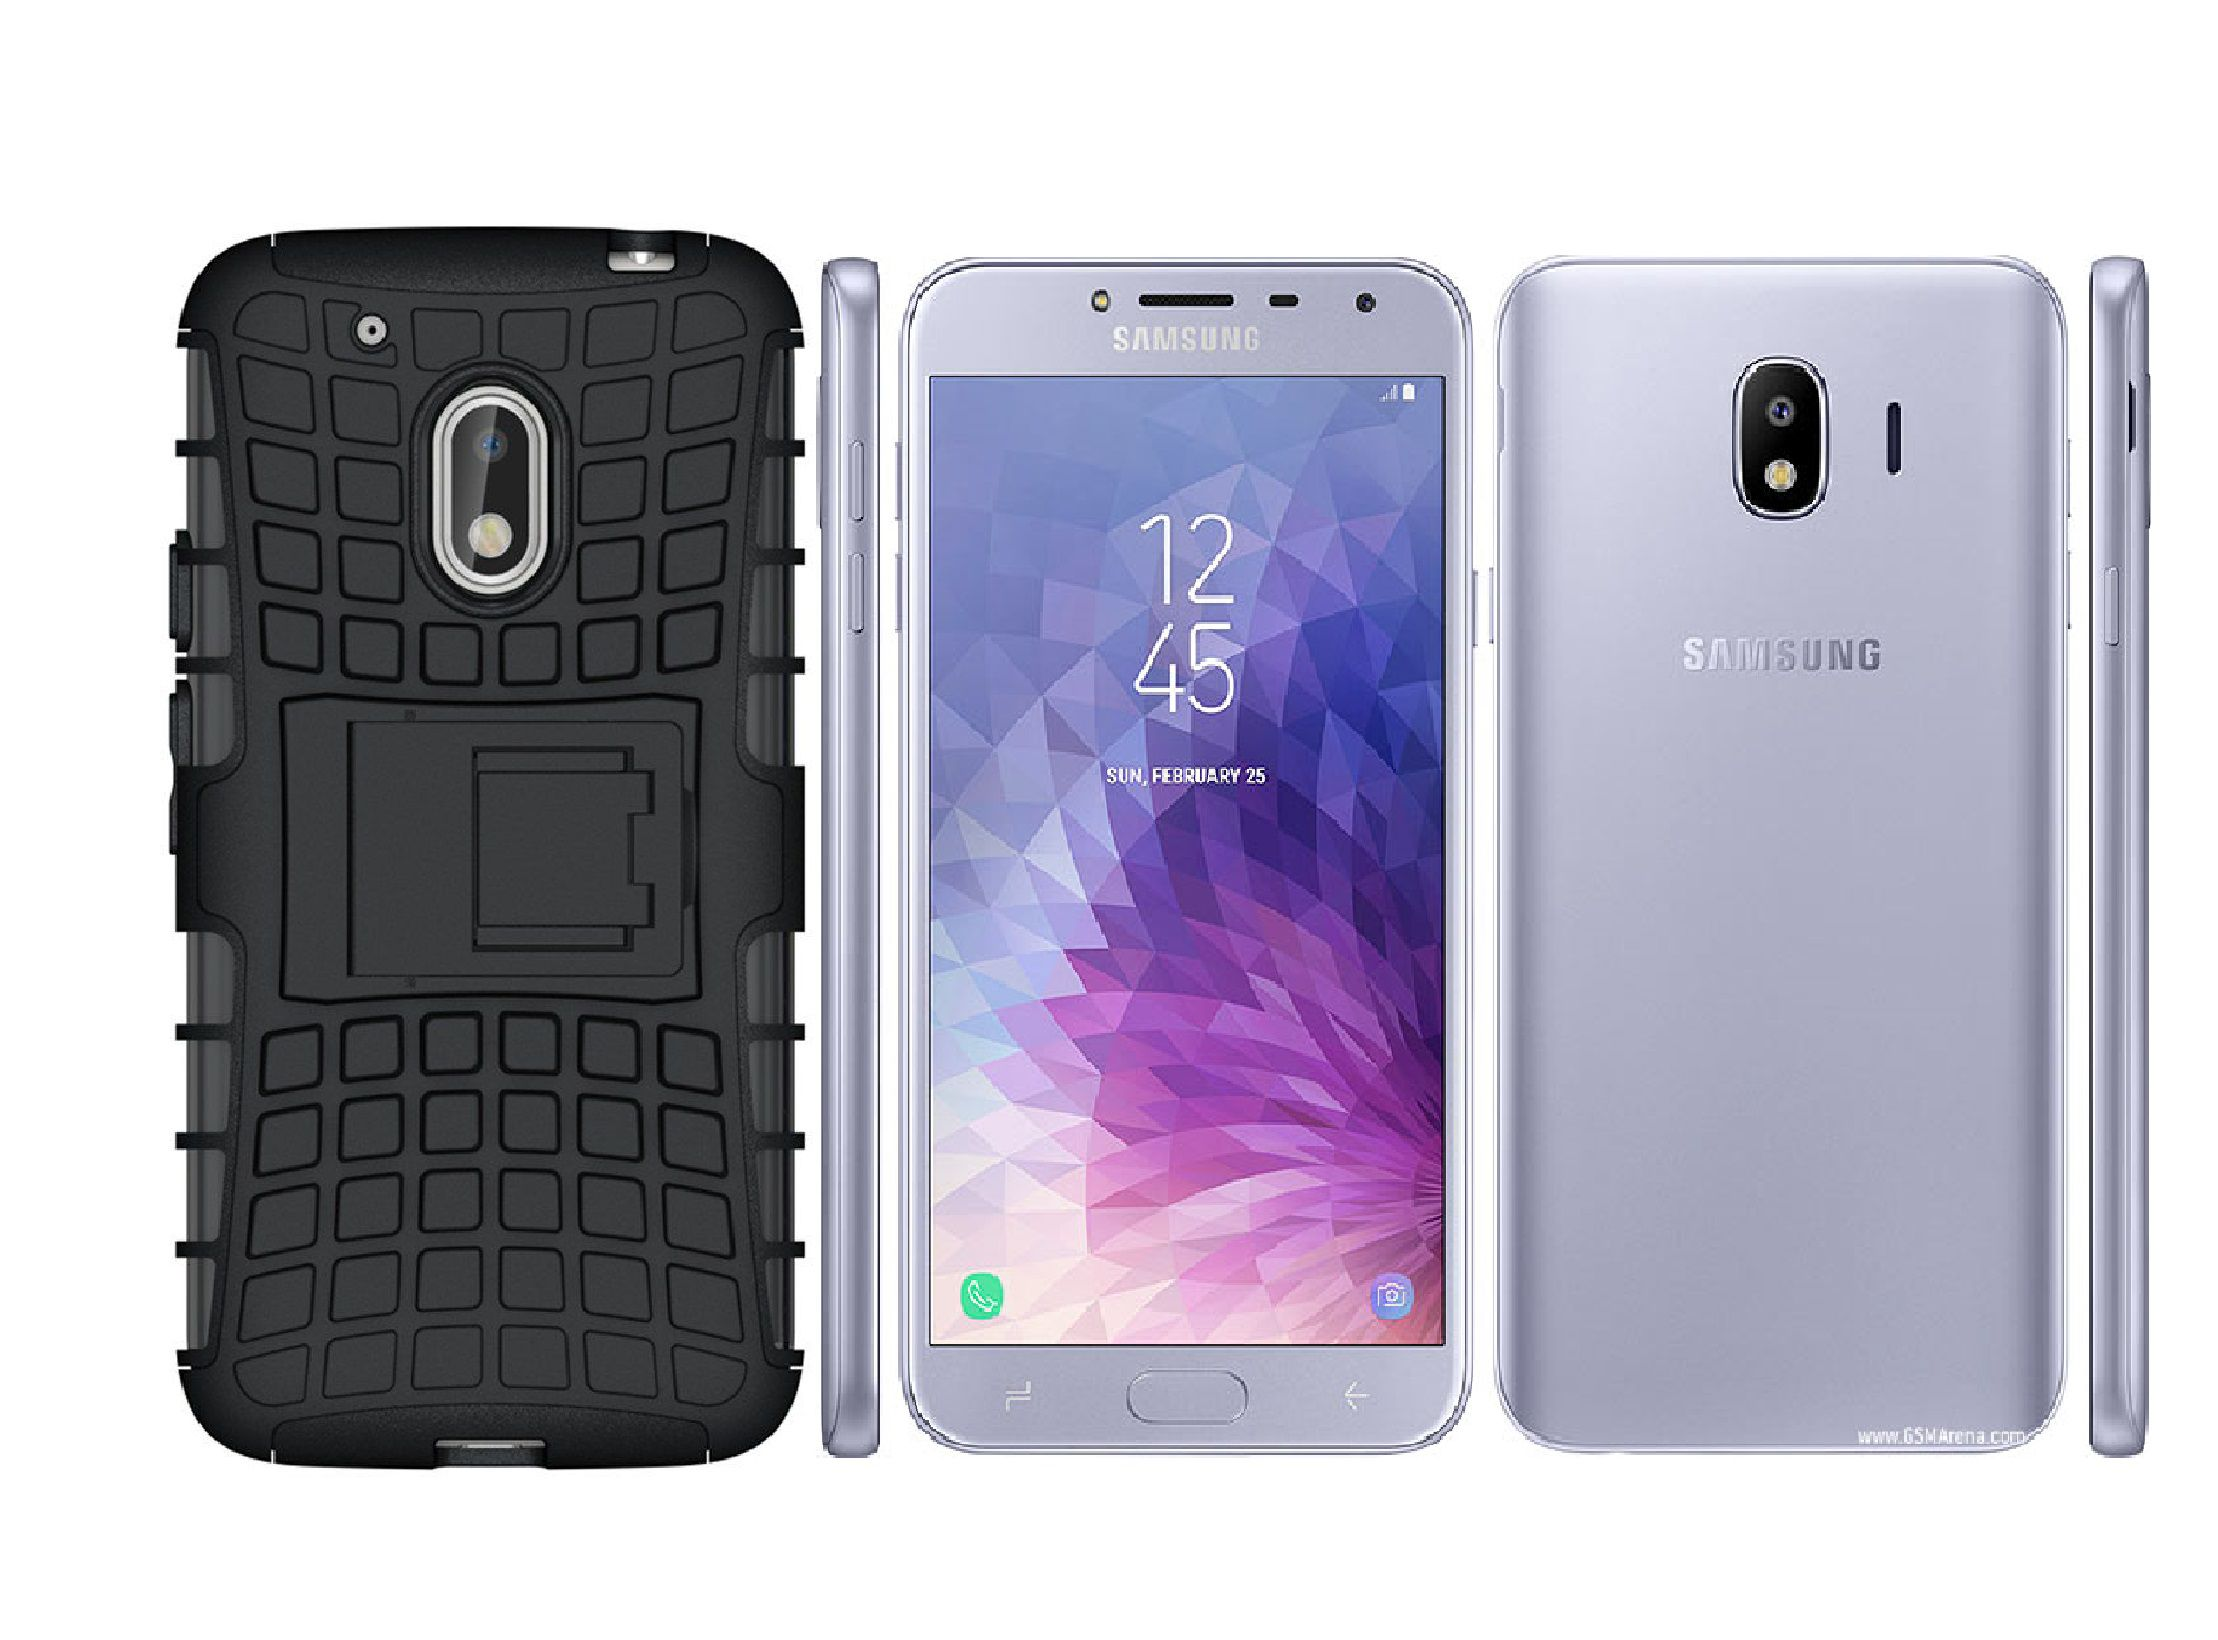 Samsung Galaxy J4 Cases with Stands SpectraDeal Black